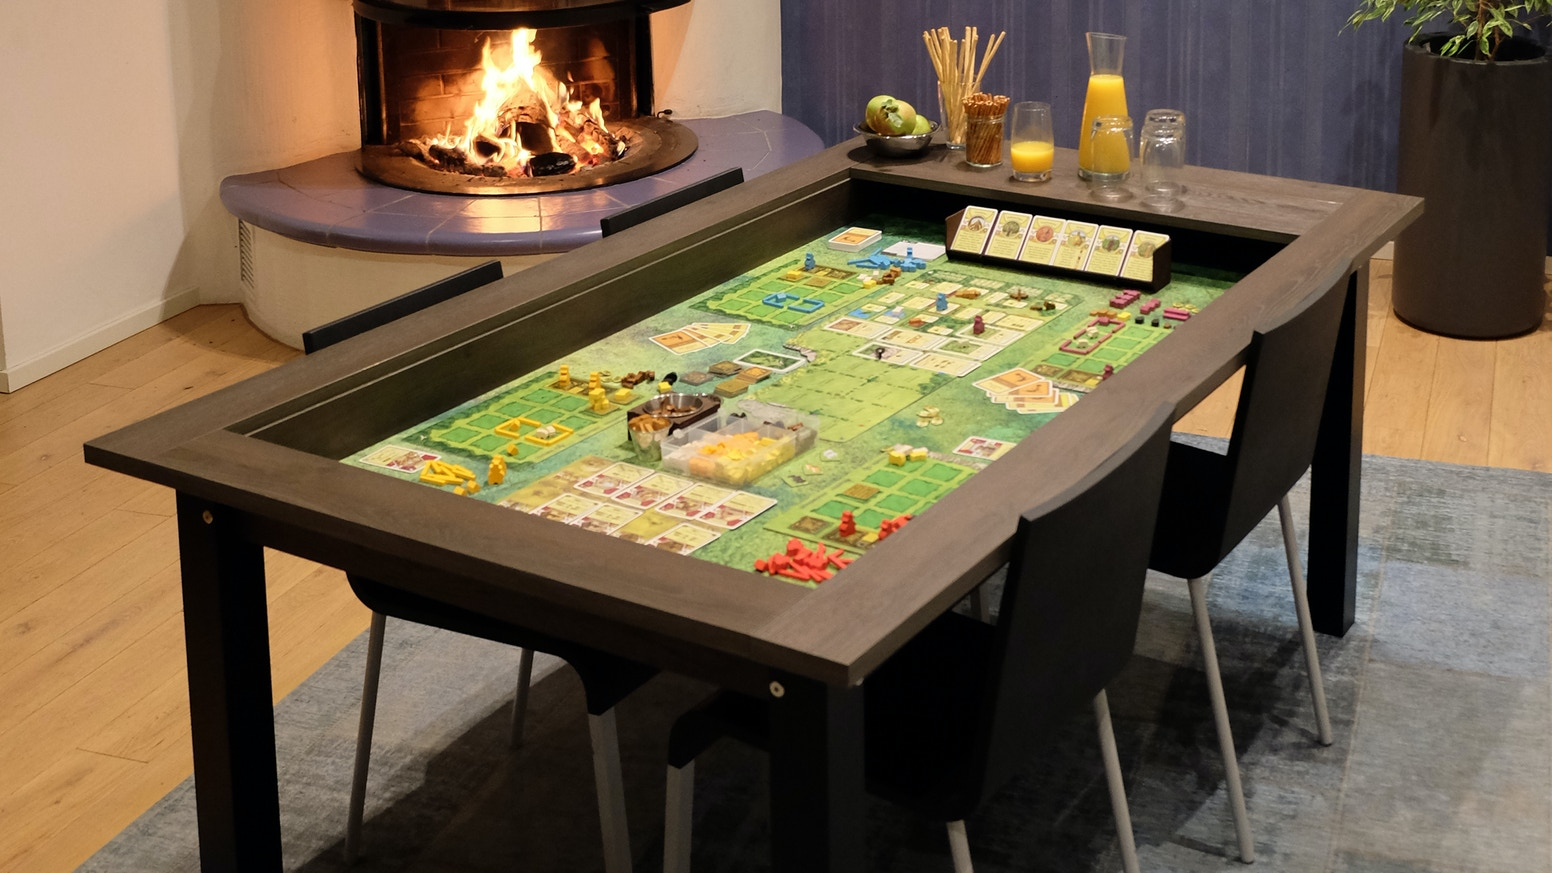 hÜne spieltische - boardgame tables for every day by hÜne - kraken